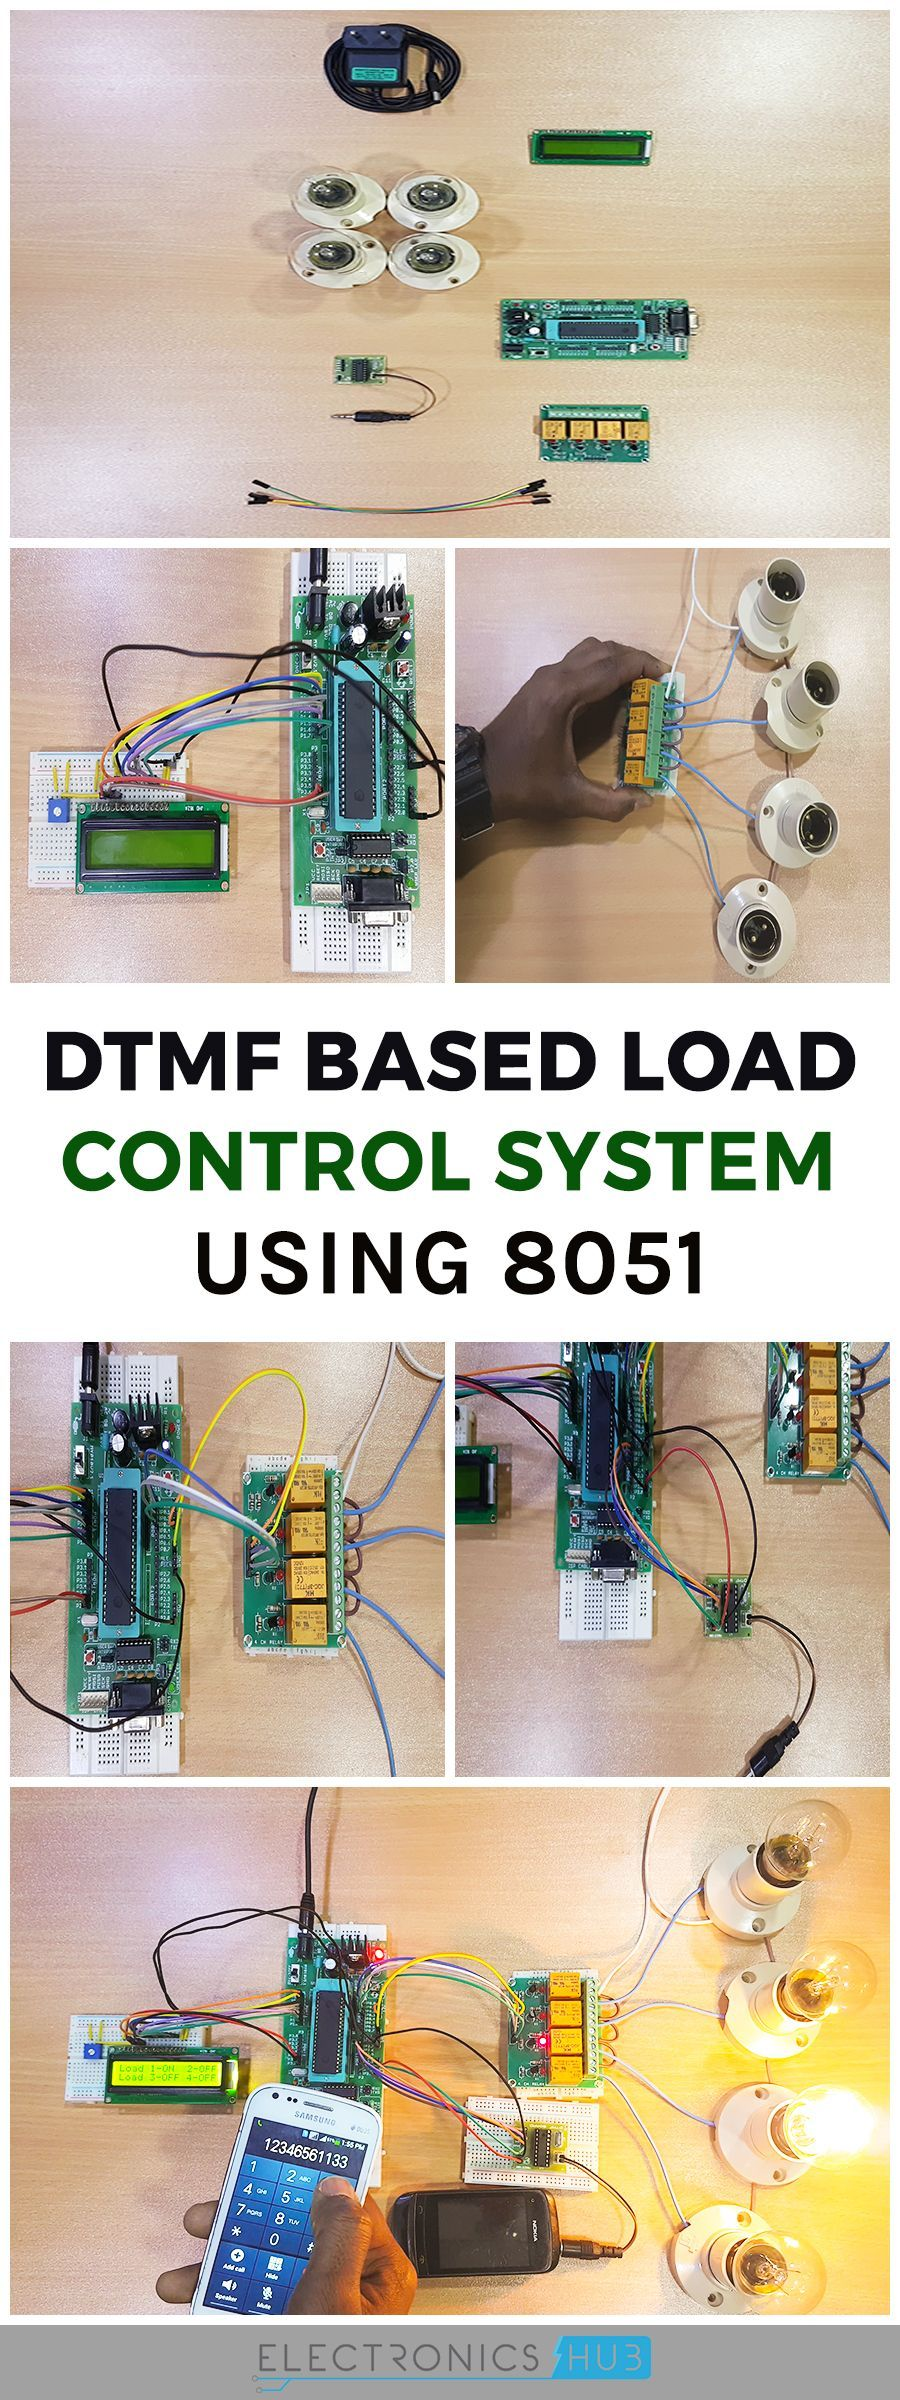 Dtmf Based Home Automation System Using Microcontroller Password Door Locking Circuit Diagram 8051